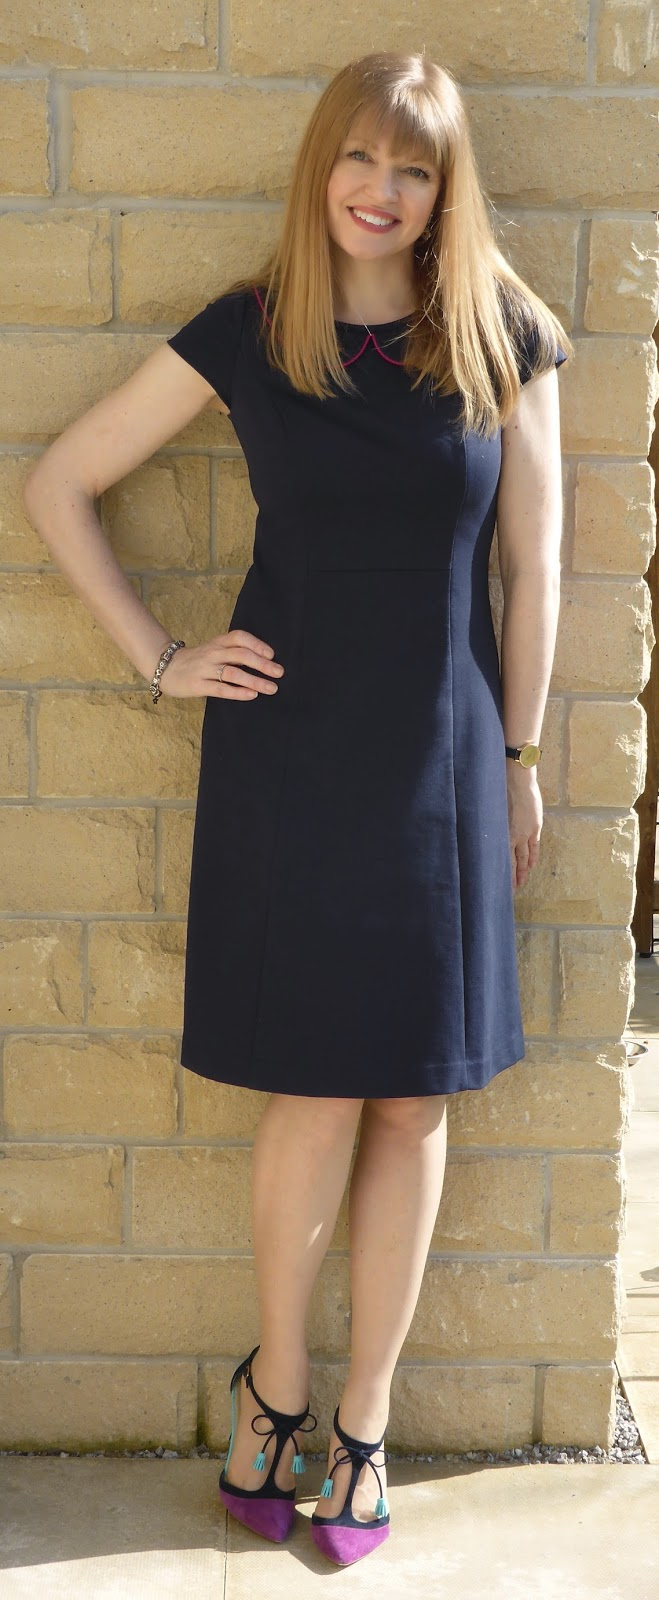 Over 40 Fashion Blogger What Lizzy Loves wearing Navy Boden The Strand Dress with Peter Pan Collar and Boden Alice Heels in Amethyst and Navy